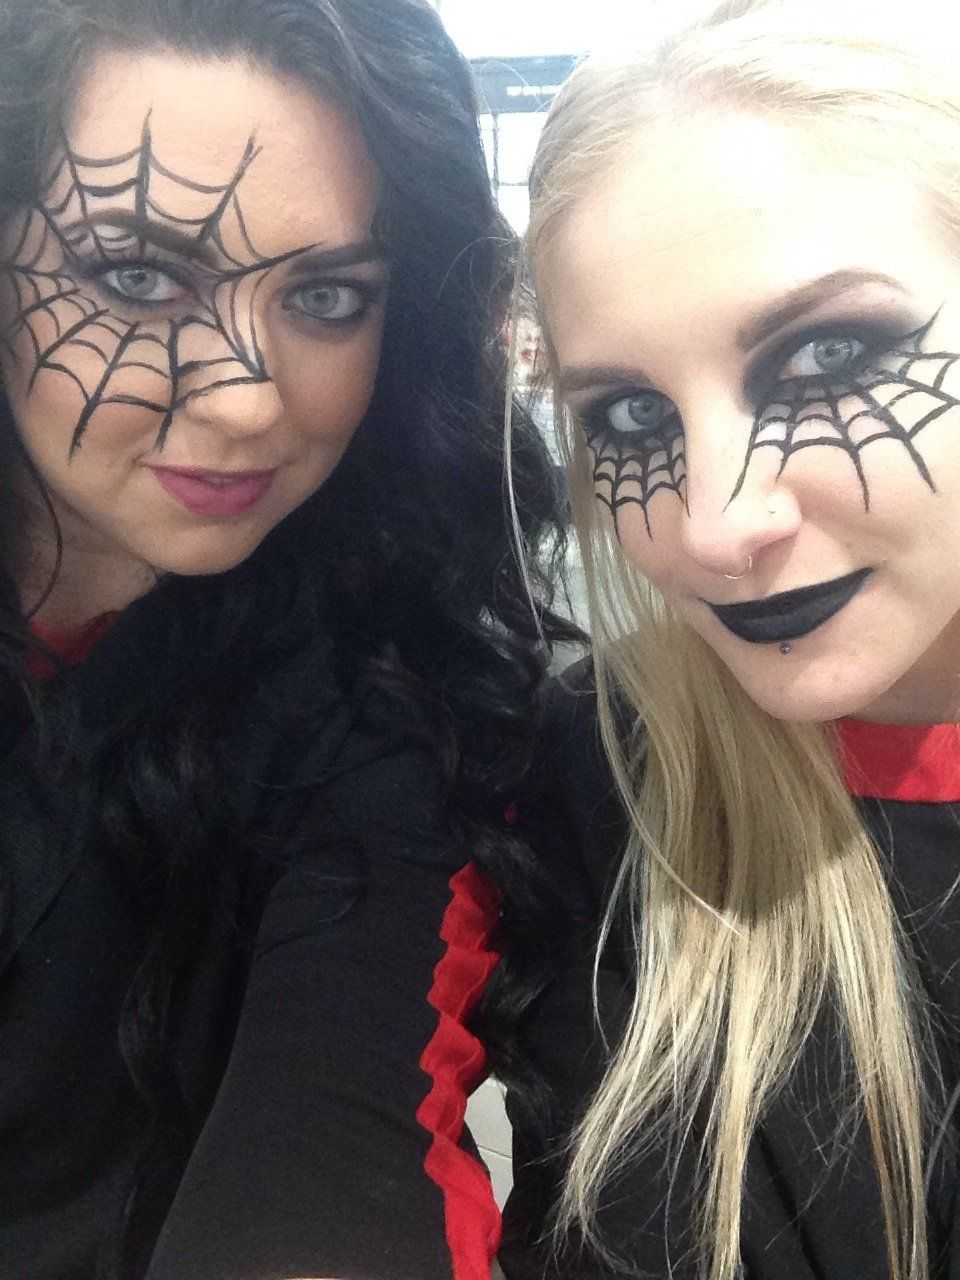 Halloween makeup INSECT INSPIRED DAY by WaldenGall Tag your pics